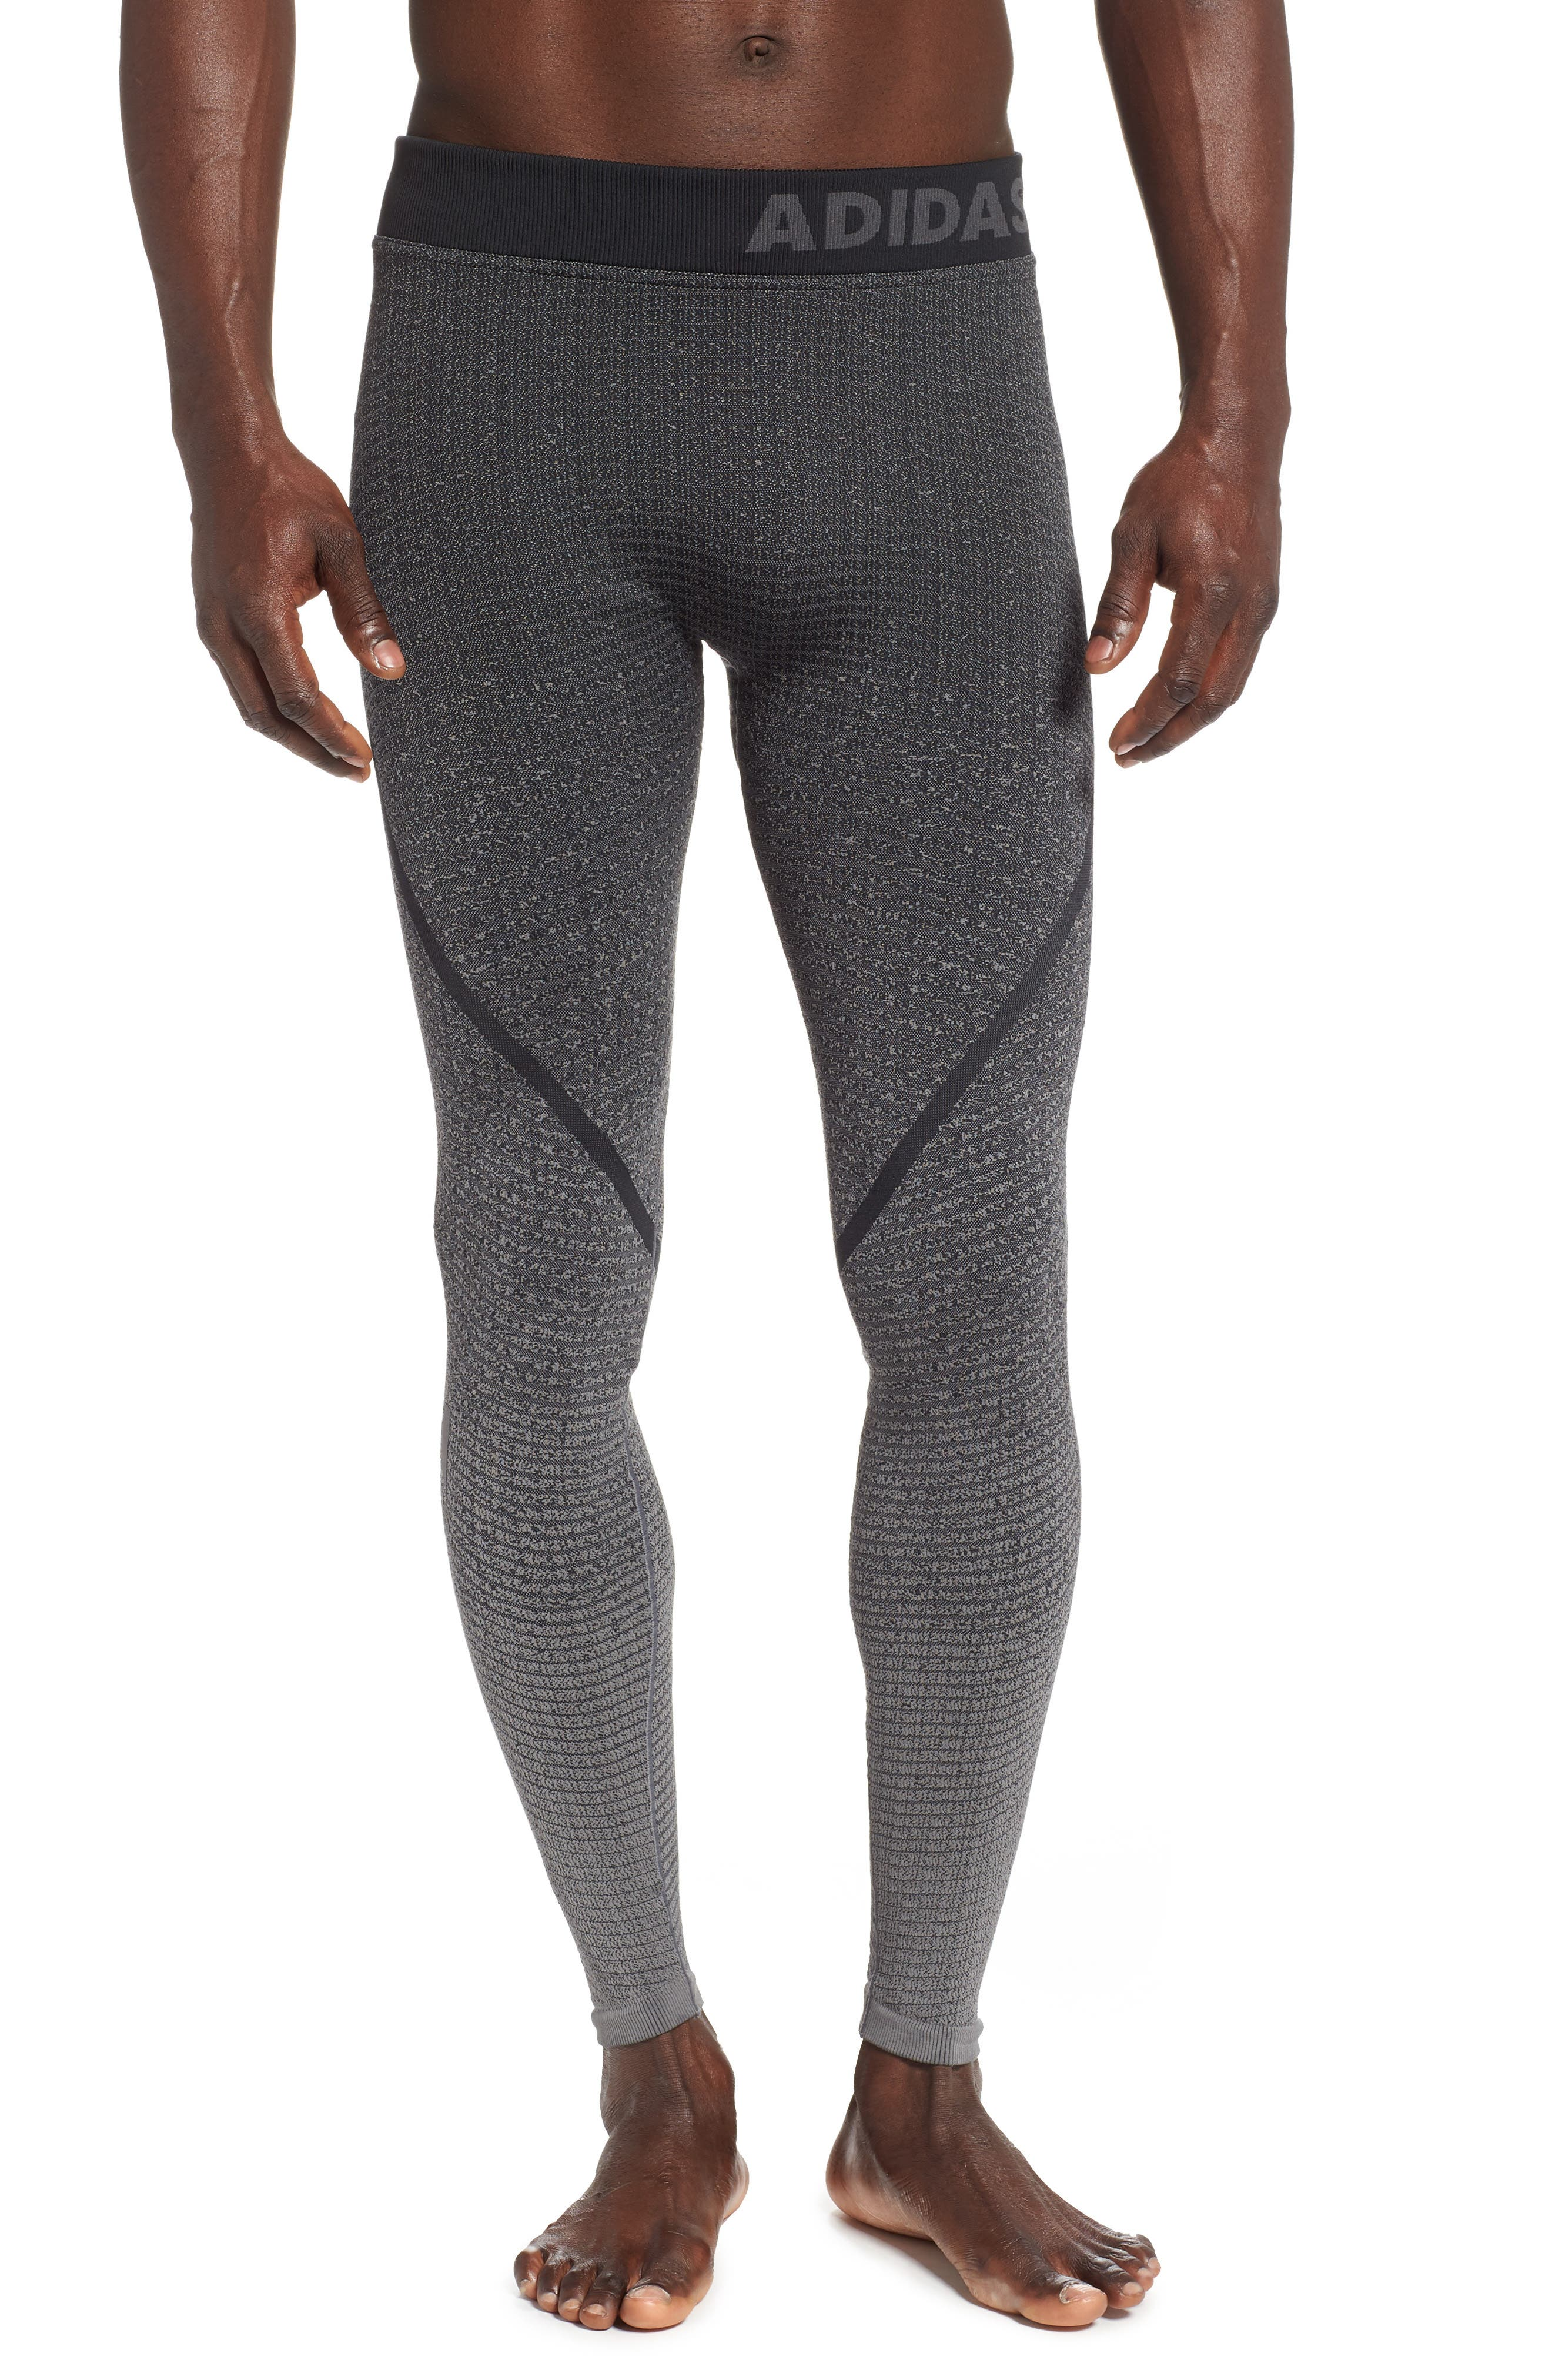 Adidas Alphaskin 360 Seamless Compression Training Tights